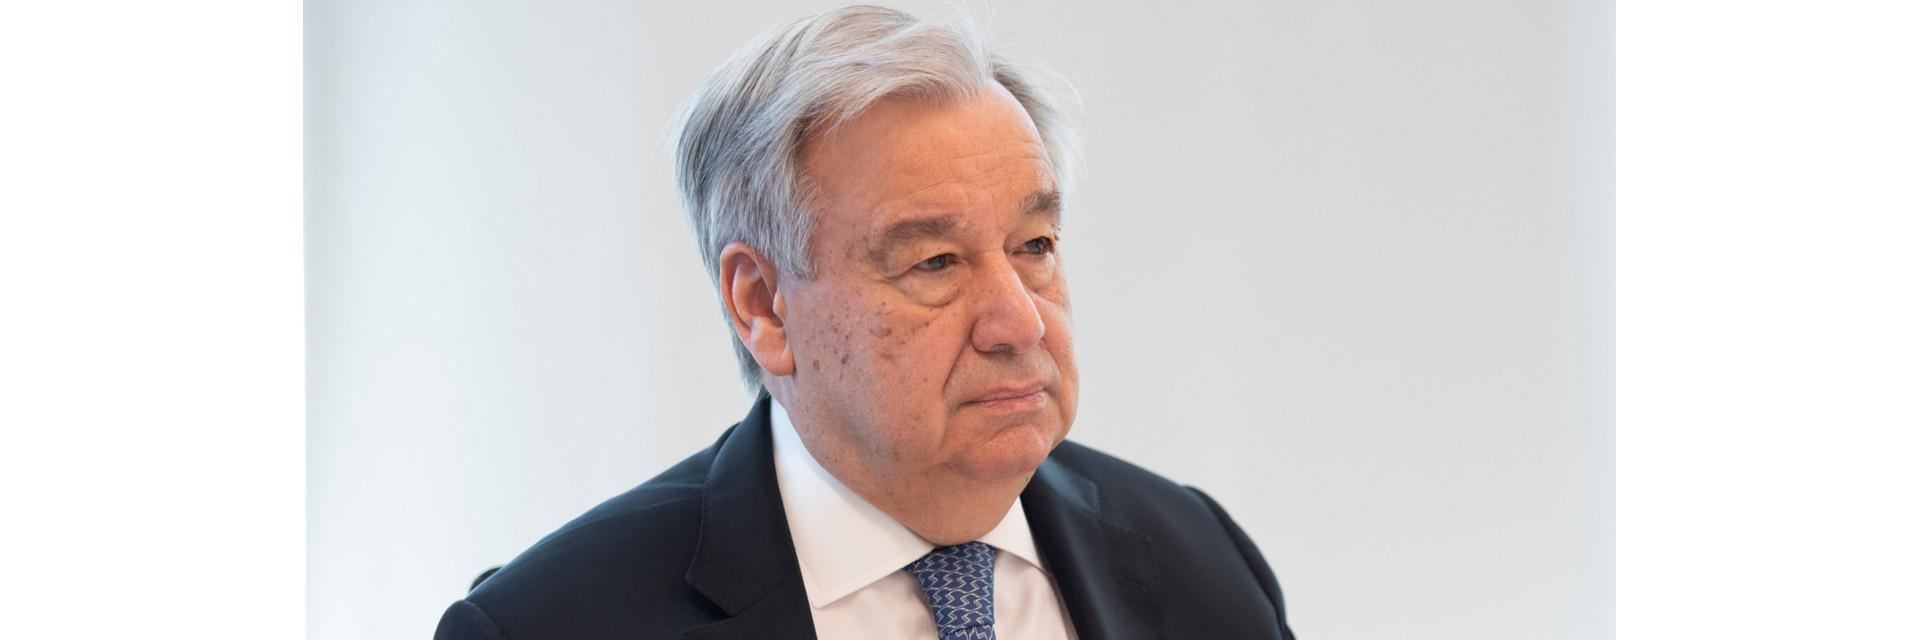 THE SECRETARY-GENERAL - REMARKS AT VIRTUAL MEETING WITH THE AFRICAN GROUP